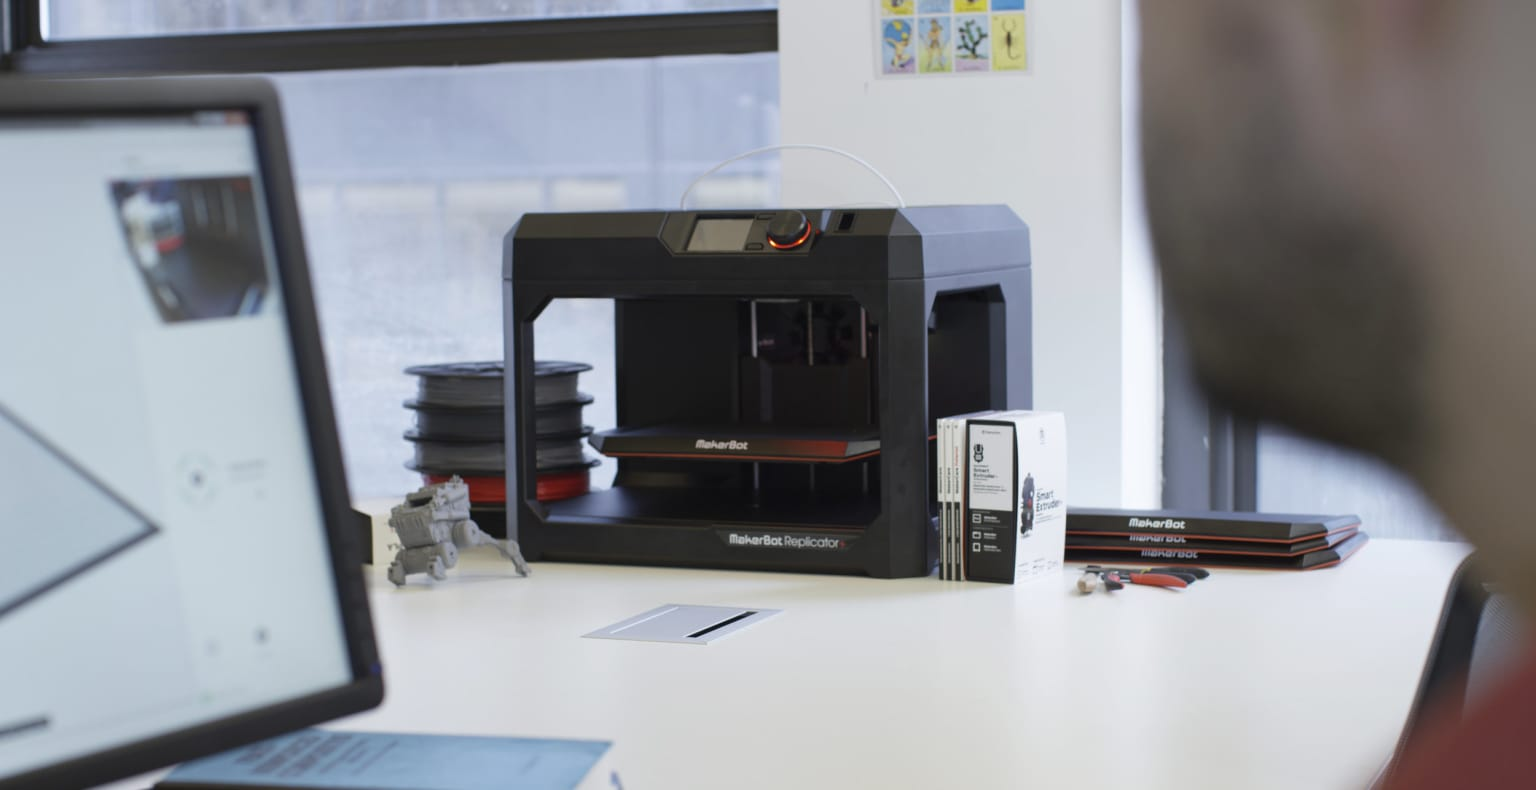 MakerBot Brand Guidelines